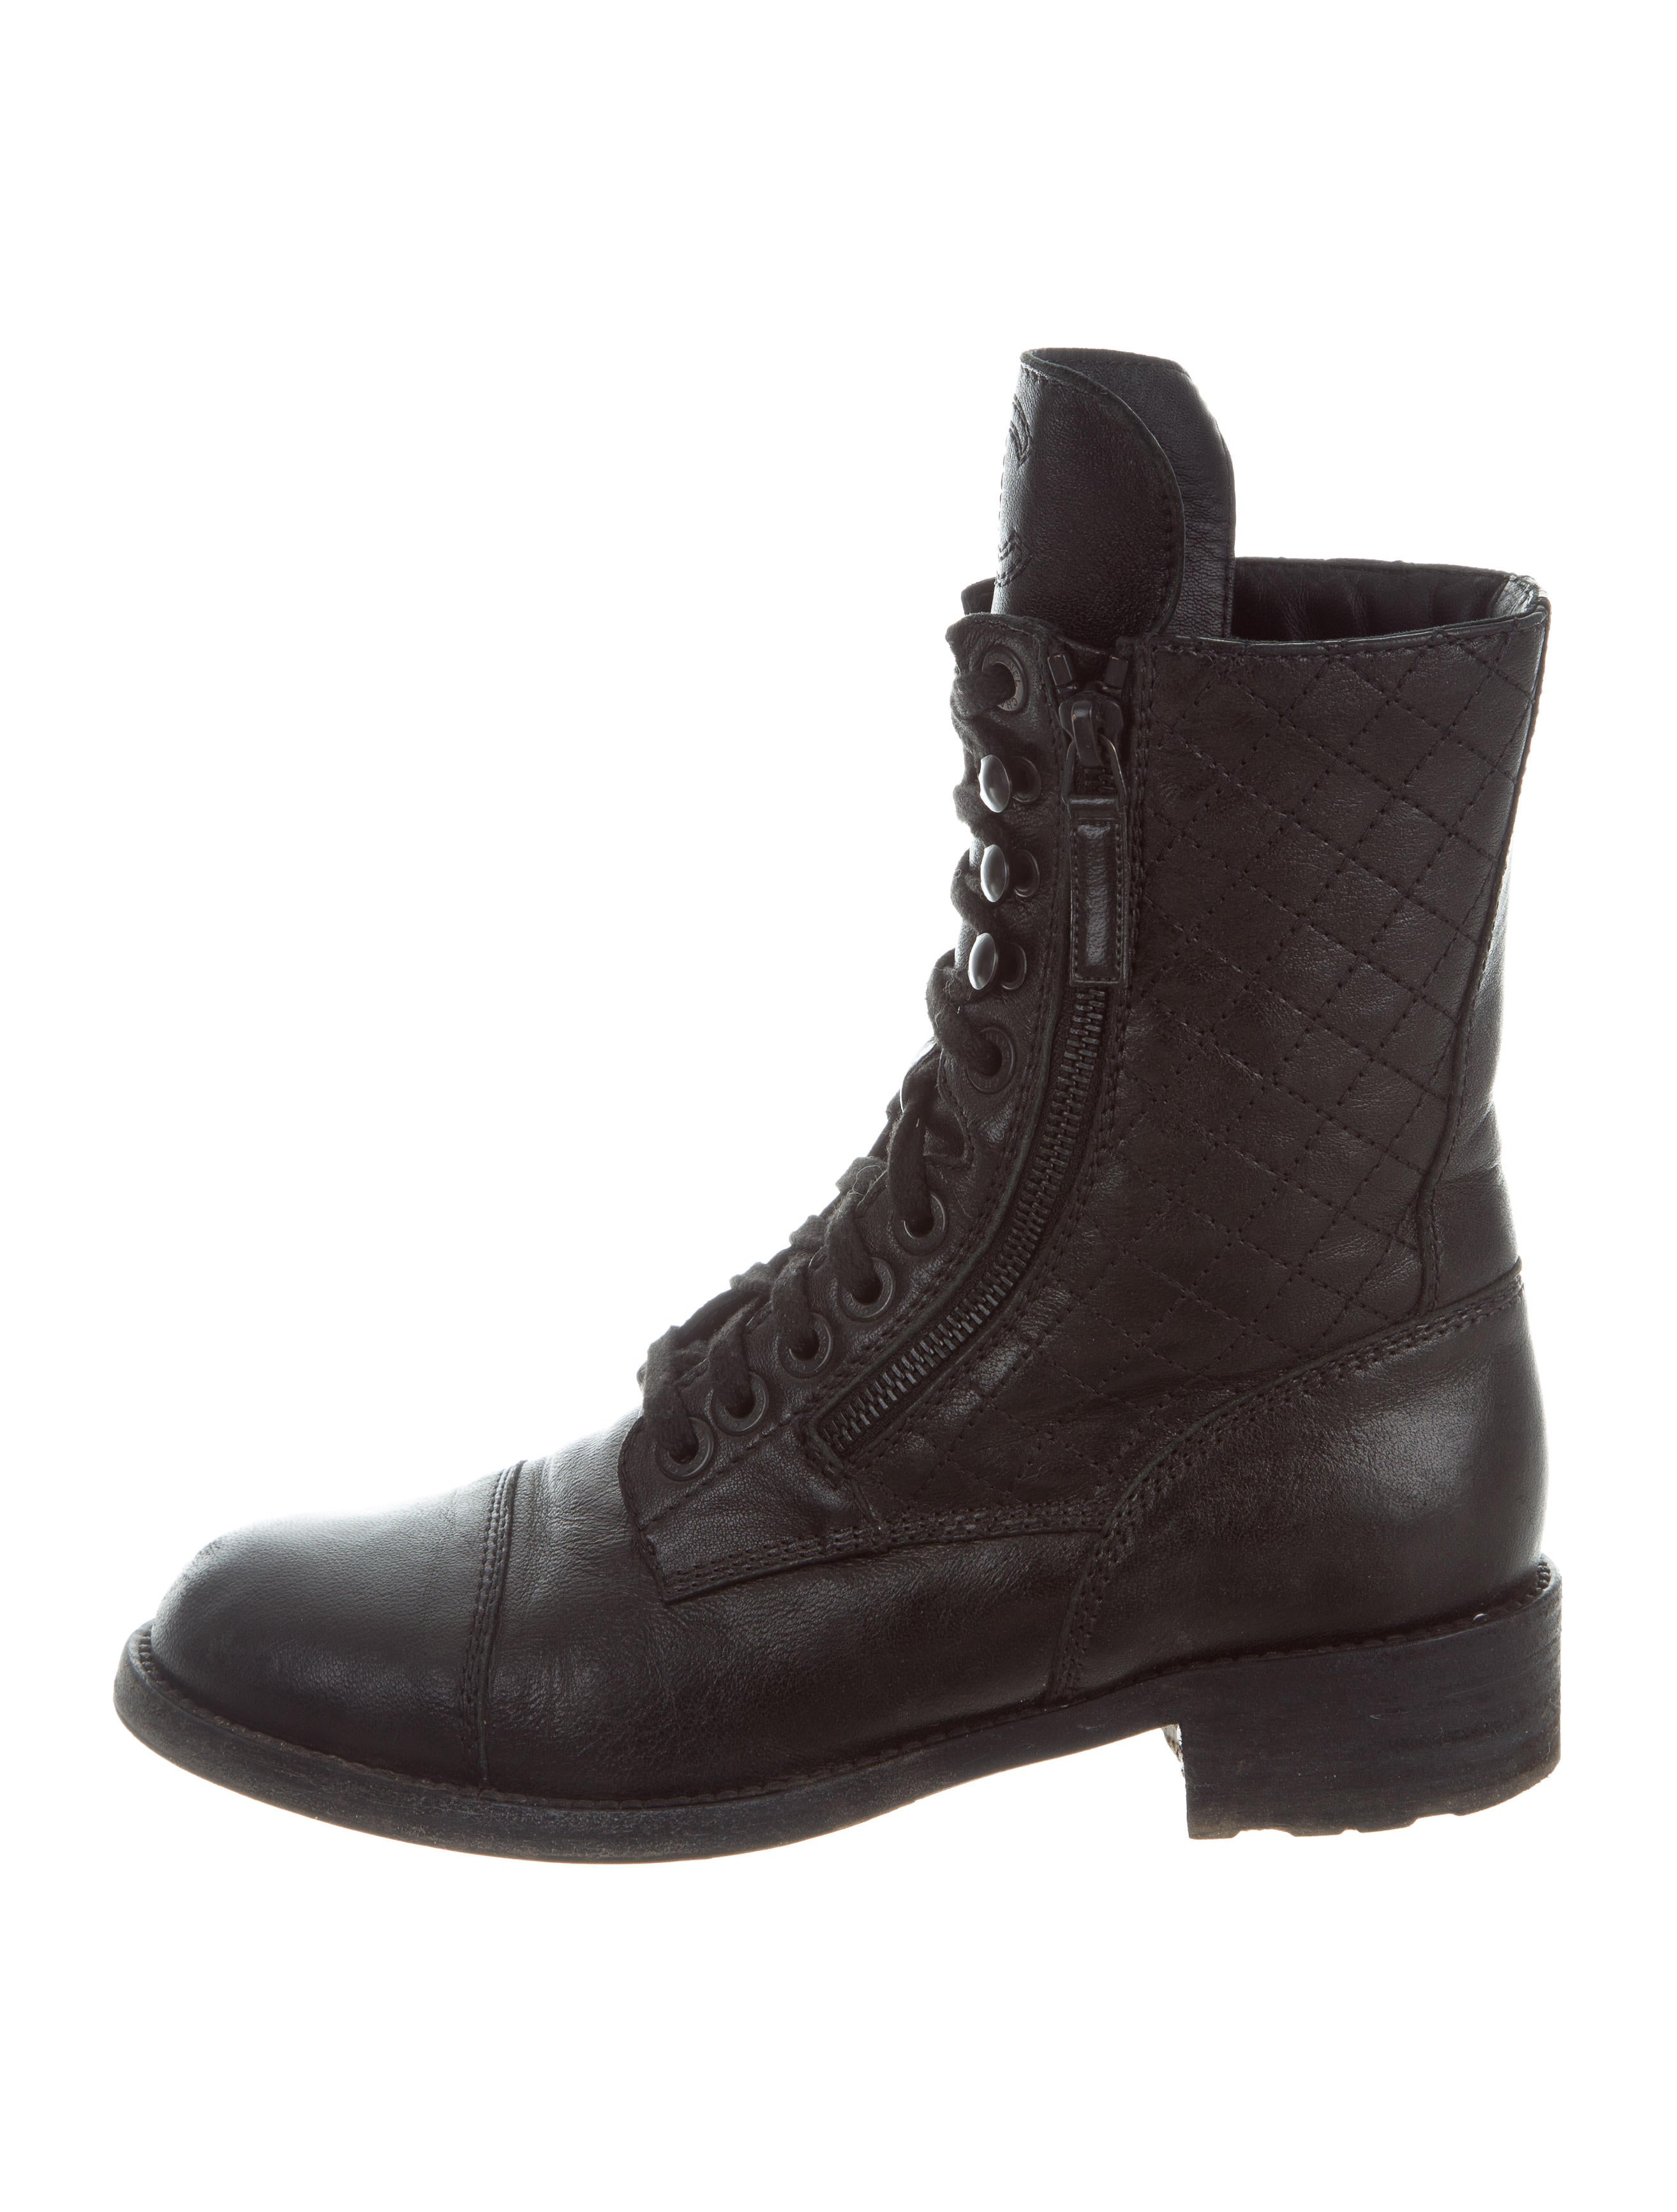 Chanel Quilted Leather Combat Boots Shoes Cha190125